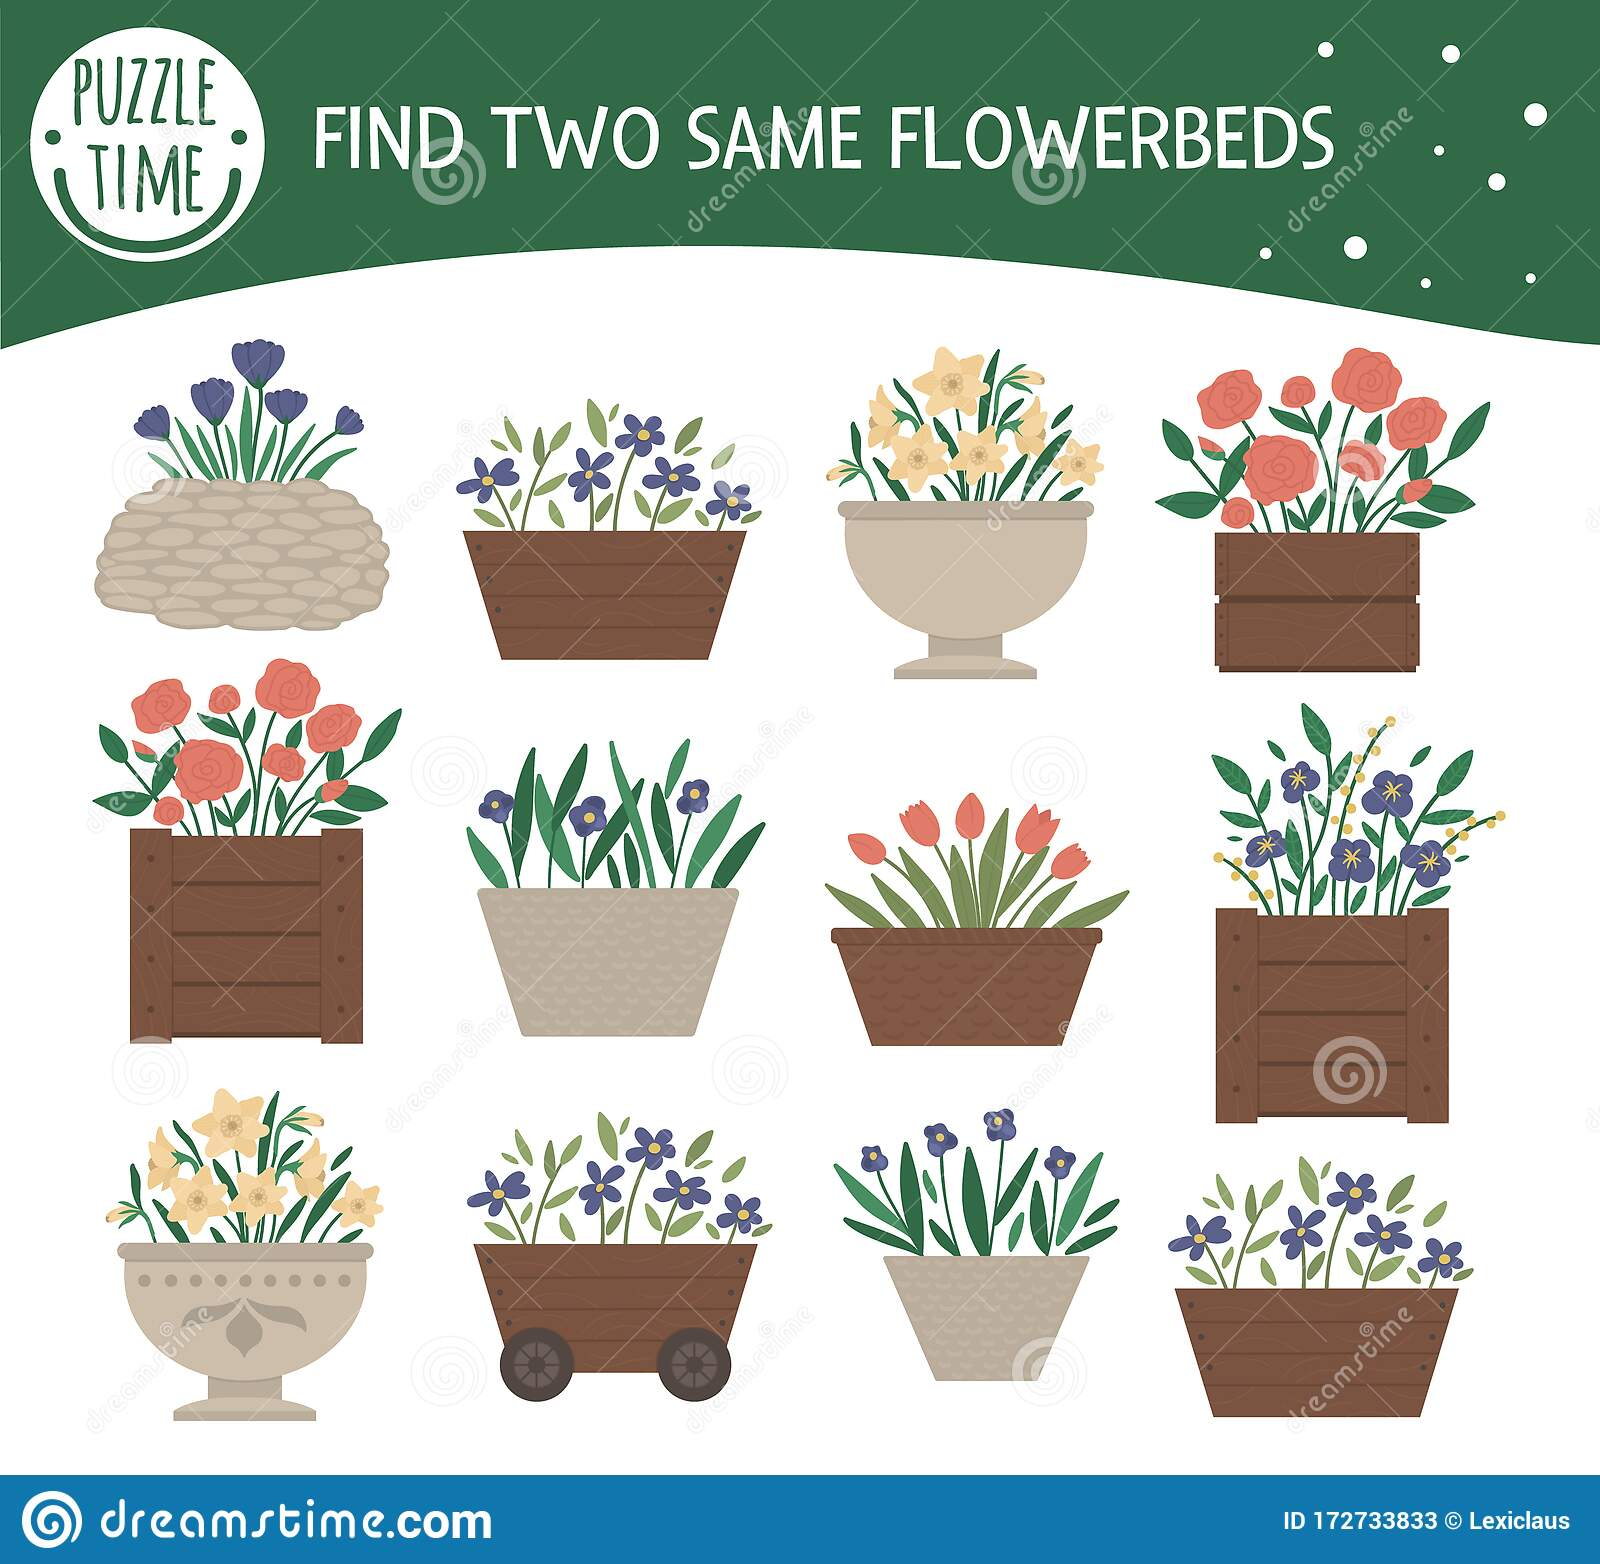 Find Two Same Flower Beds Garden Or Park Themed Matching